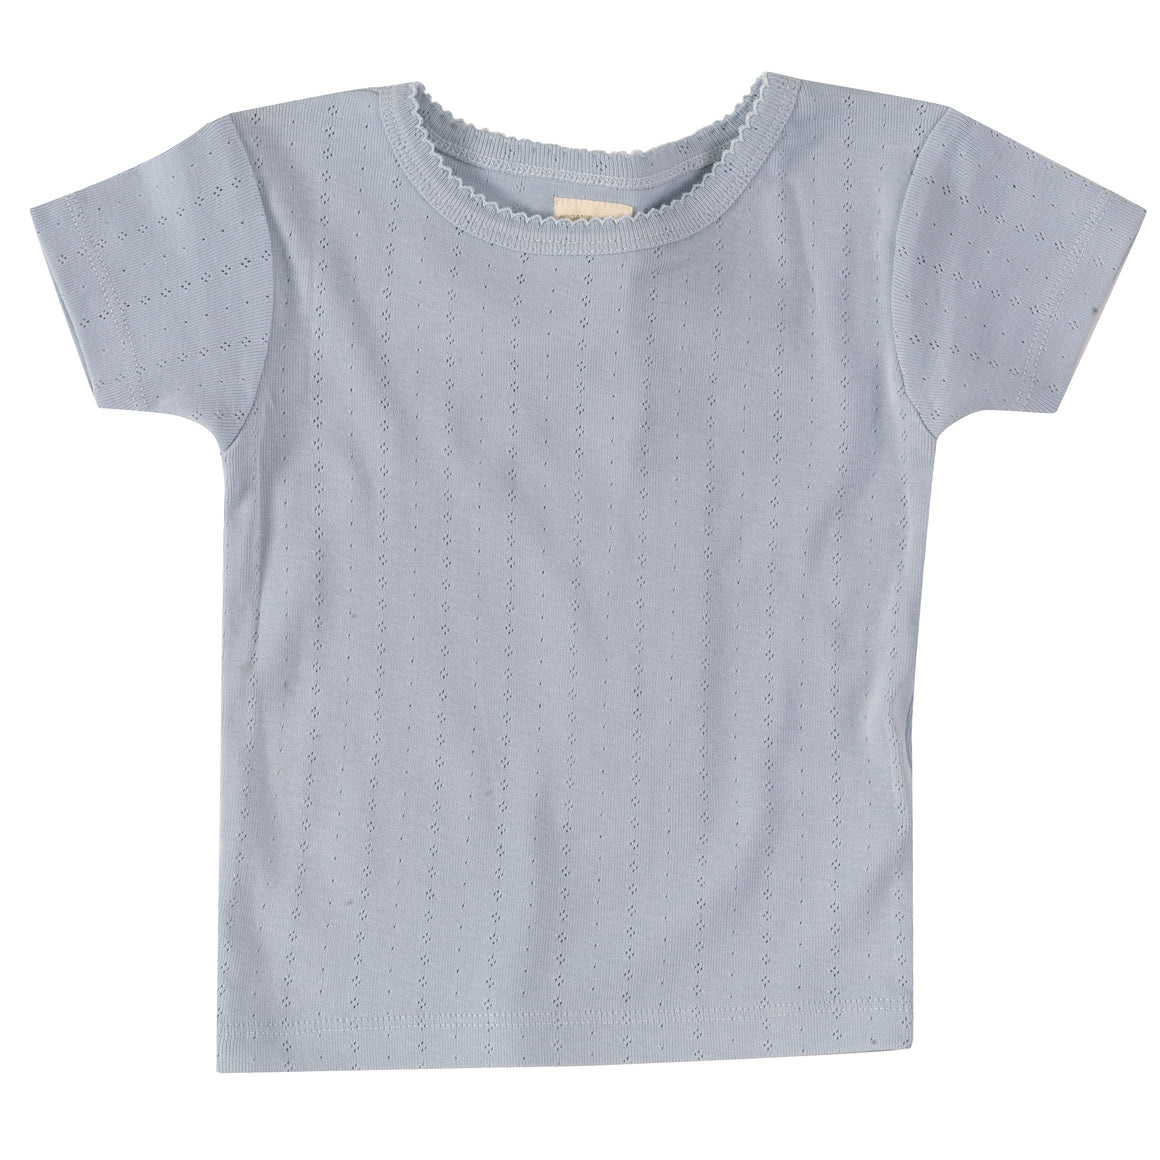 Pointelle T-shirt in Pale Blue